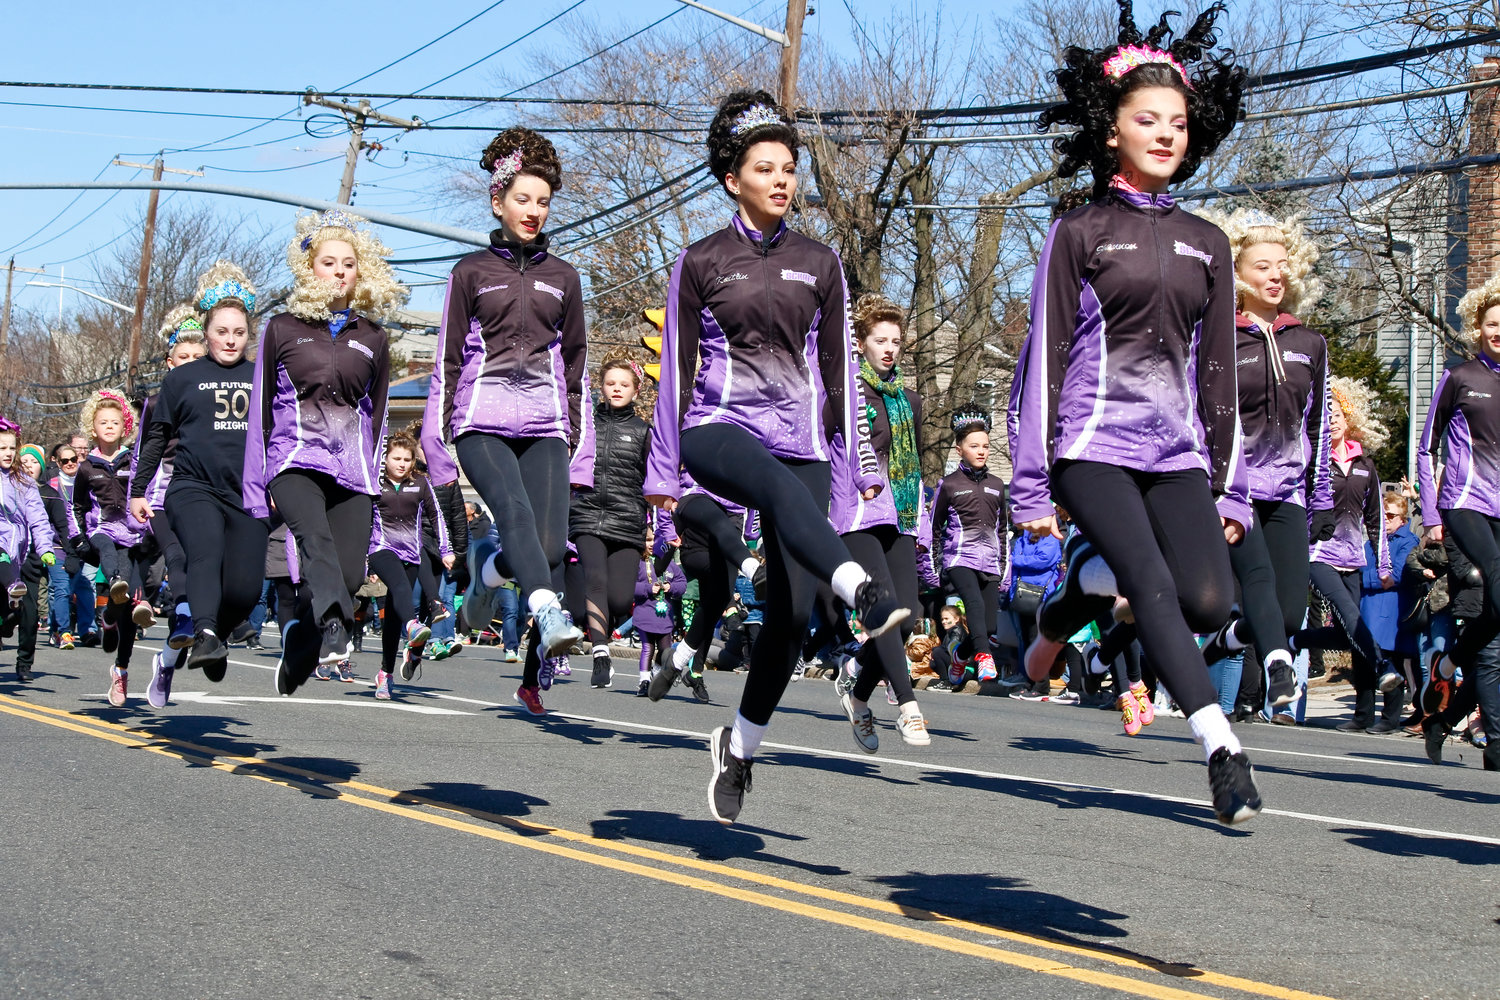 Irish Dancers from the Schade Academy performed for spectators as they marched along the route.